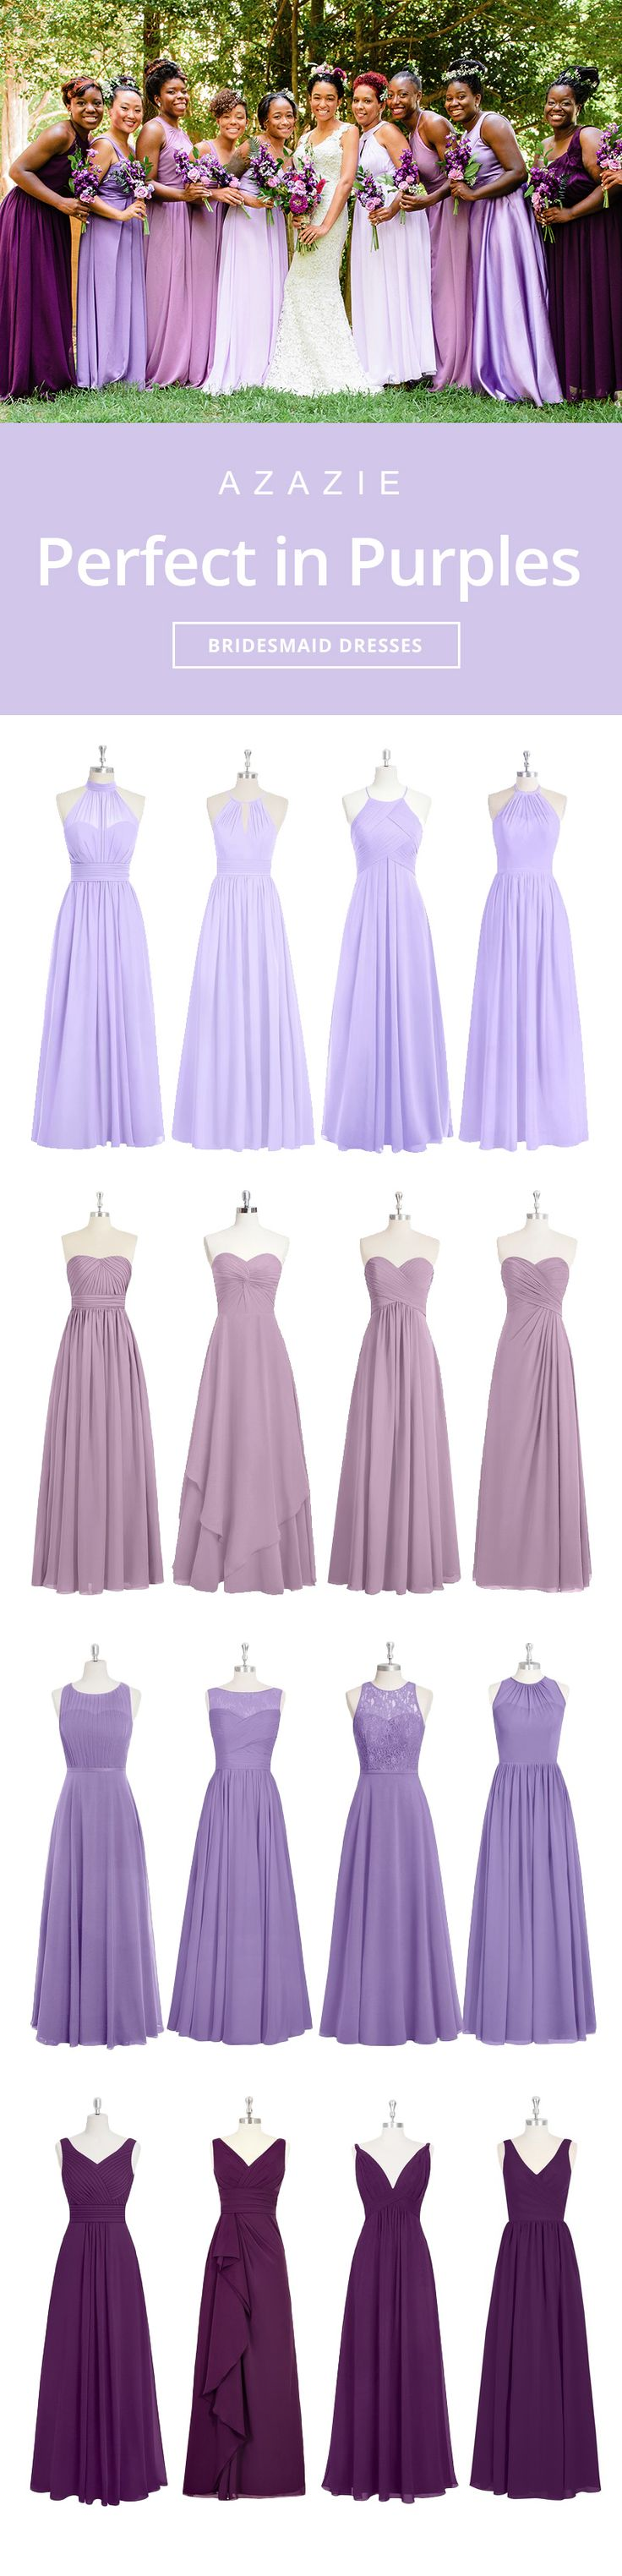 Uncategorized Colors That Match With Lavender 396 best azazie collection images on pinterest bridesmaids mixing and match your in gorgeous purples wedding tip order color